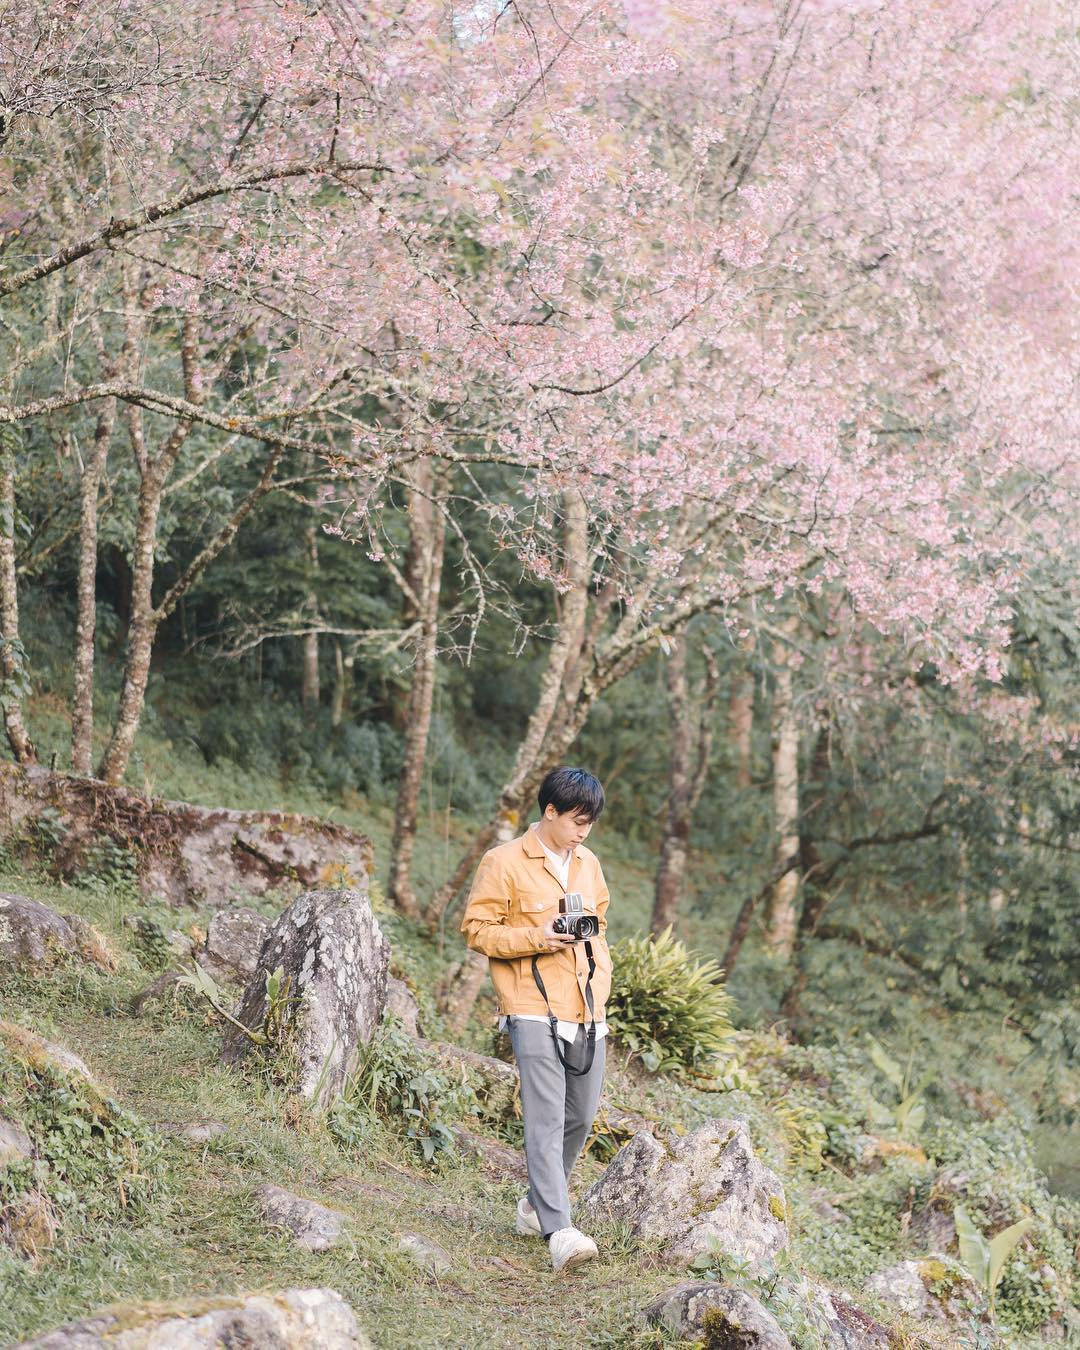 Cherry blossoms on Doi Inthanon